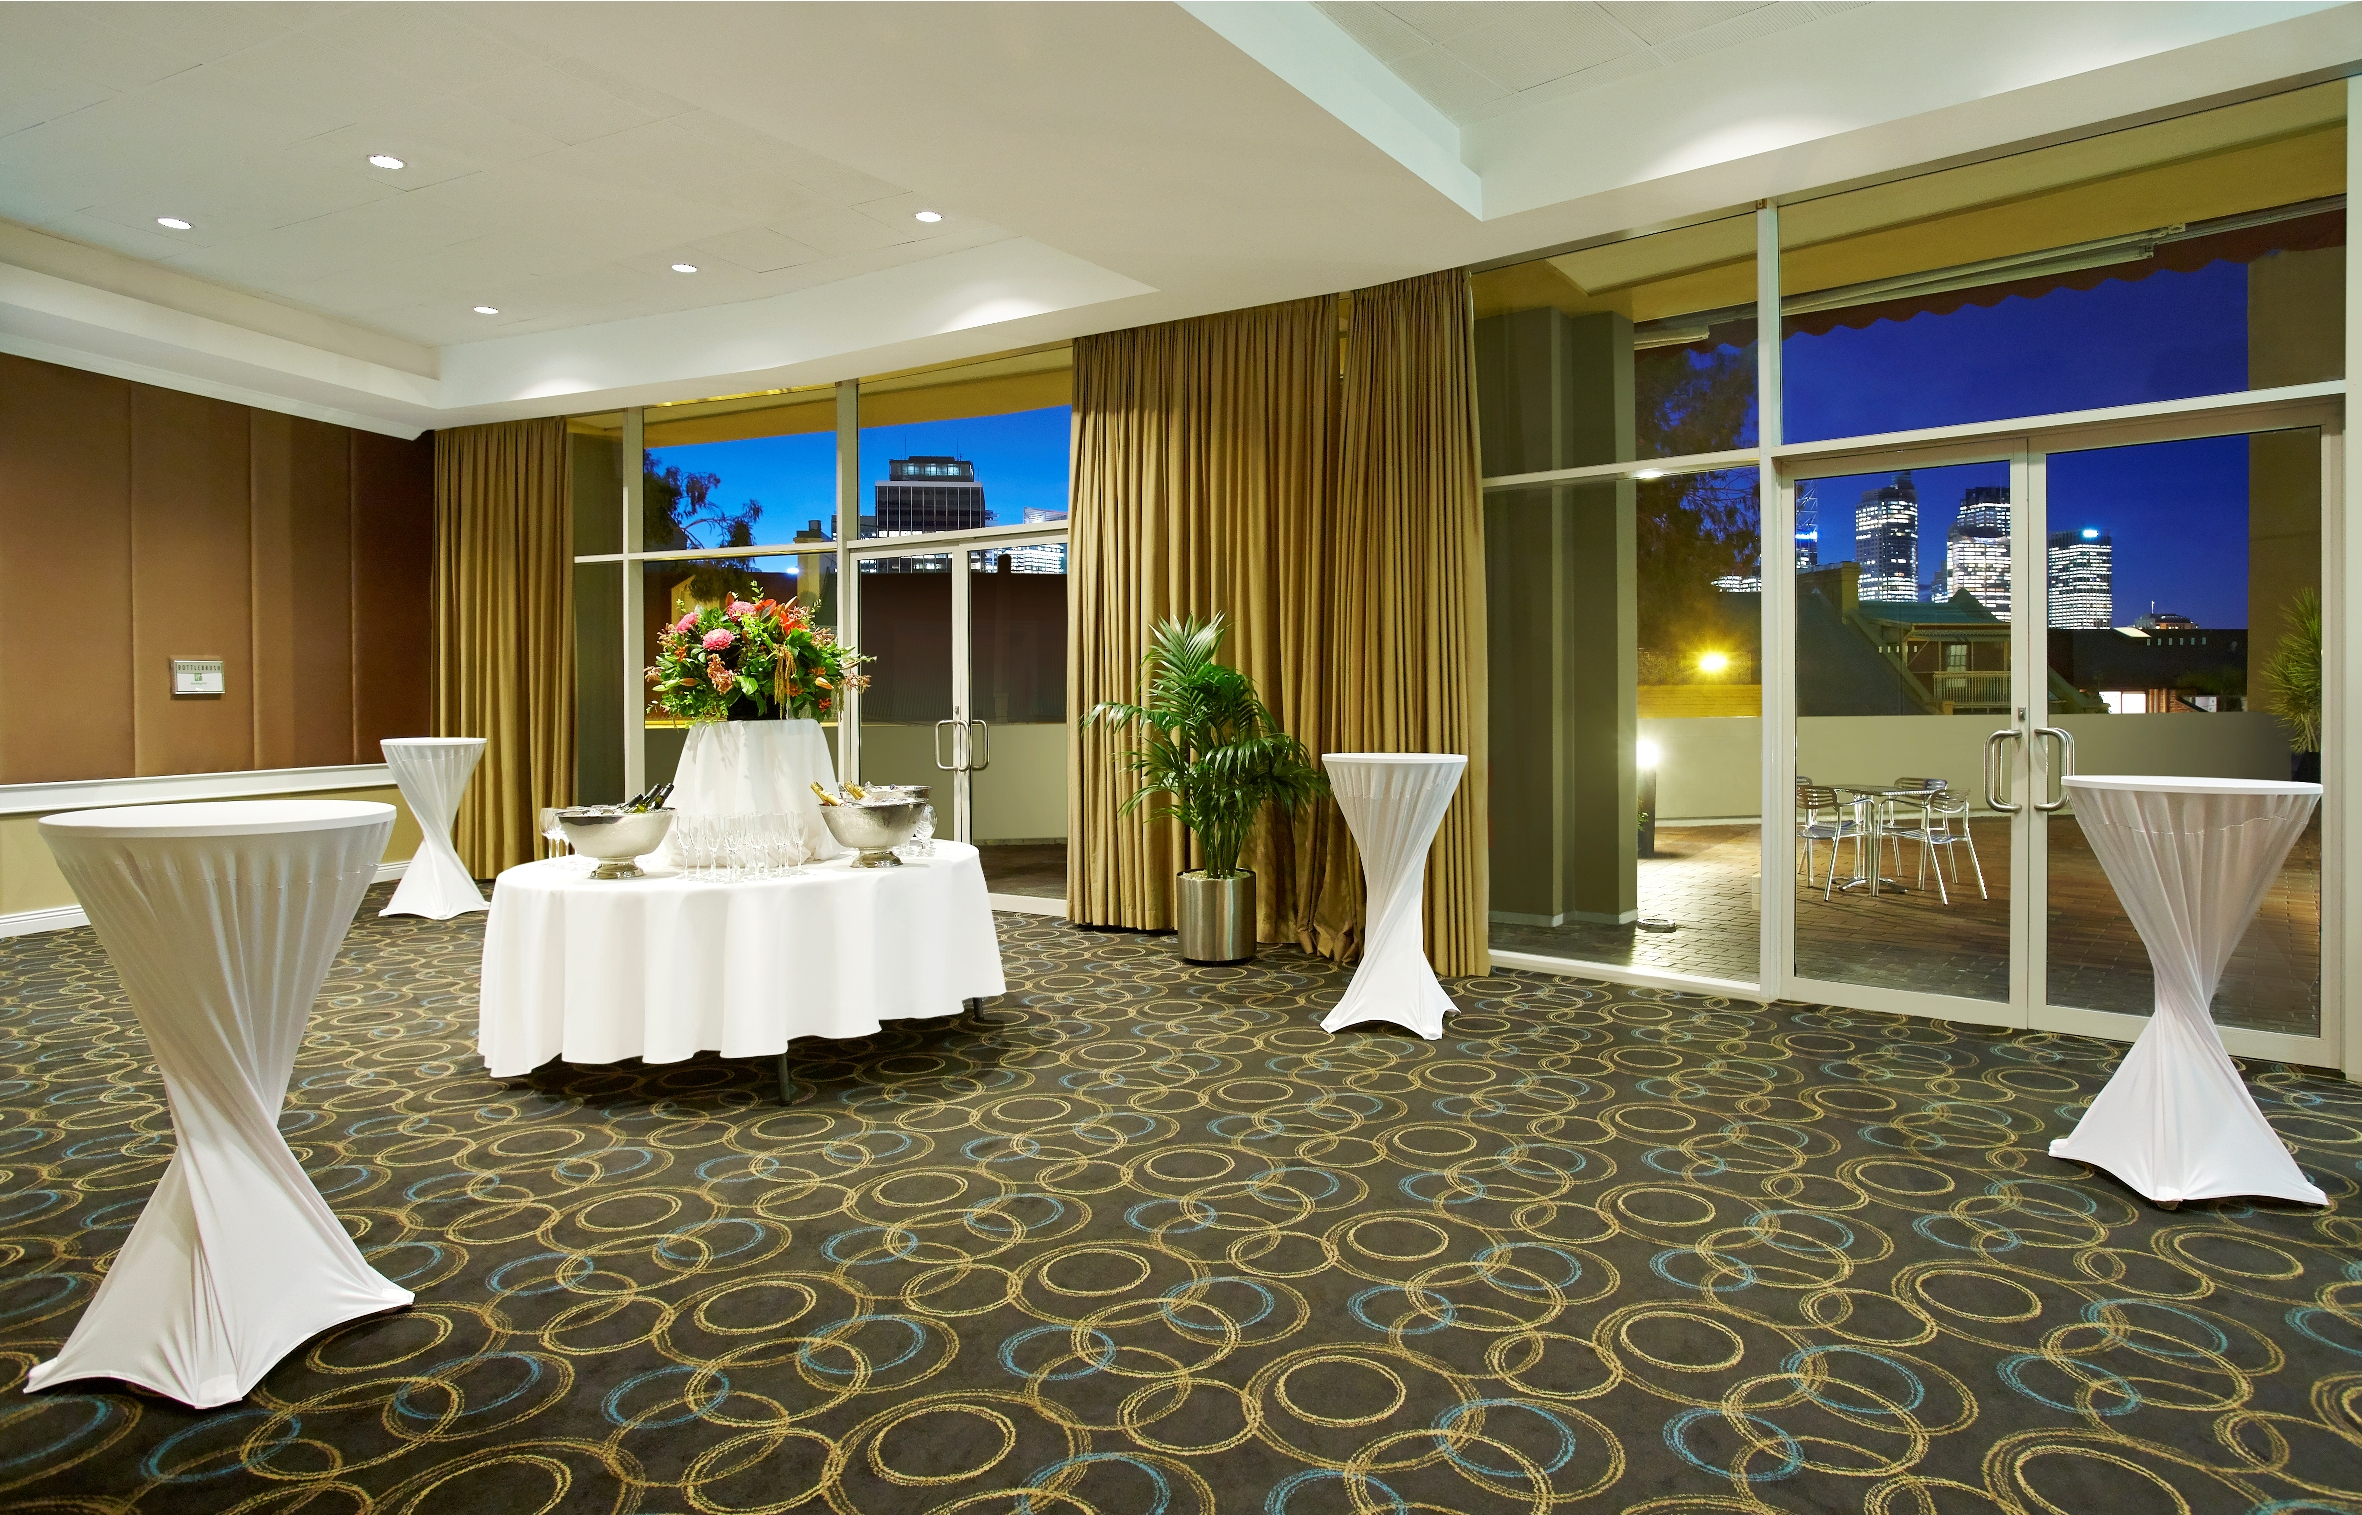 Bluegum Lobby In Holiday Inn Potts Point Set Up For Sydney Conference Drinks Or Networking